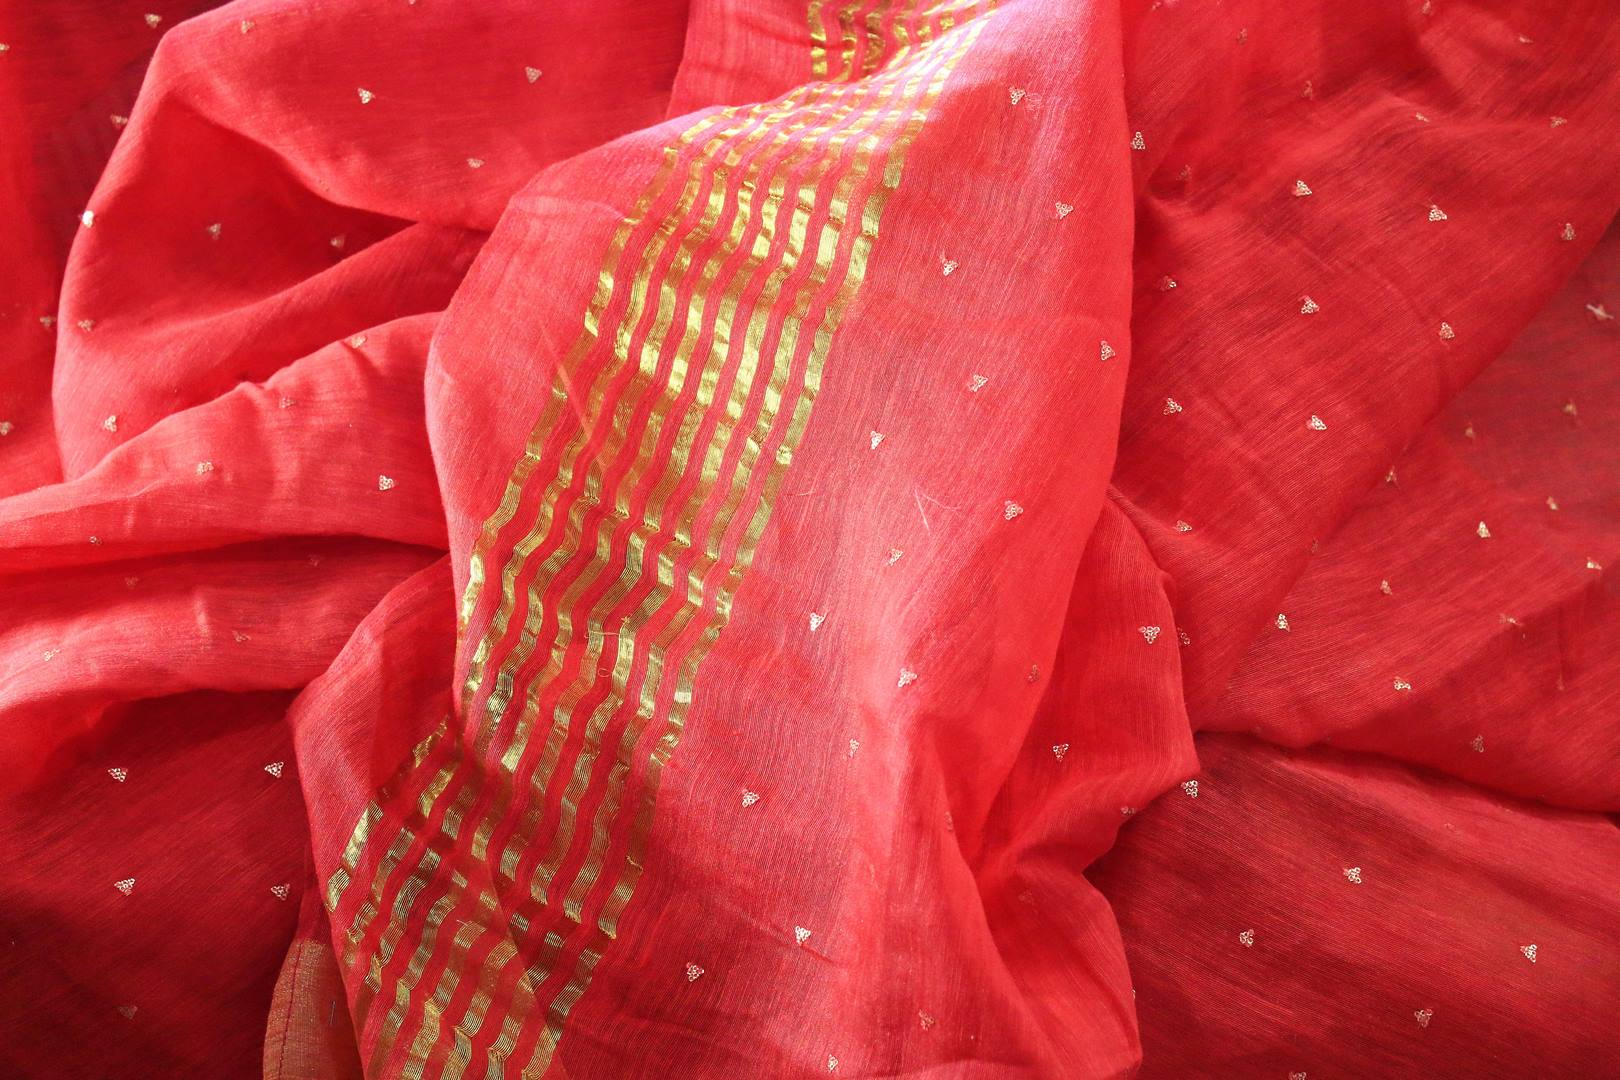 Buy red matka silk sari online in USA with mirror work. Make a statement with your Indian saree look at special occasions with an exquisite collection of Indian designer silk saris available at Pure Elegance clothing store or shop online.-details